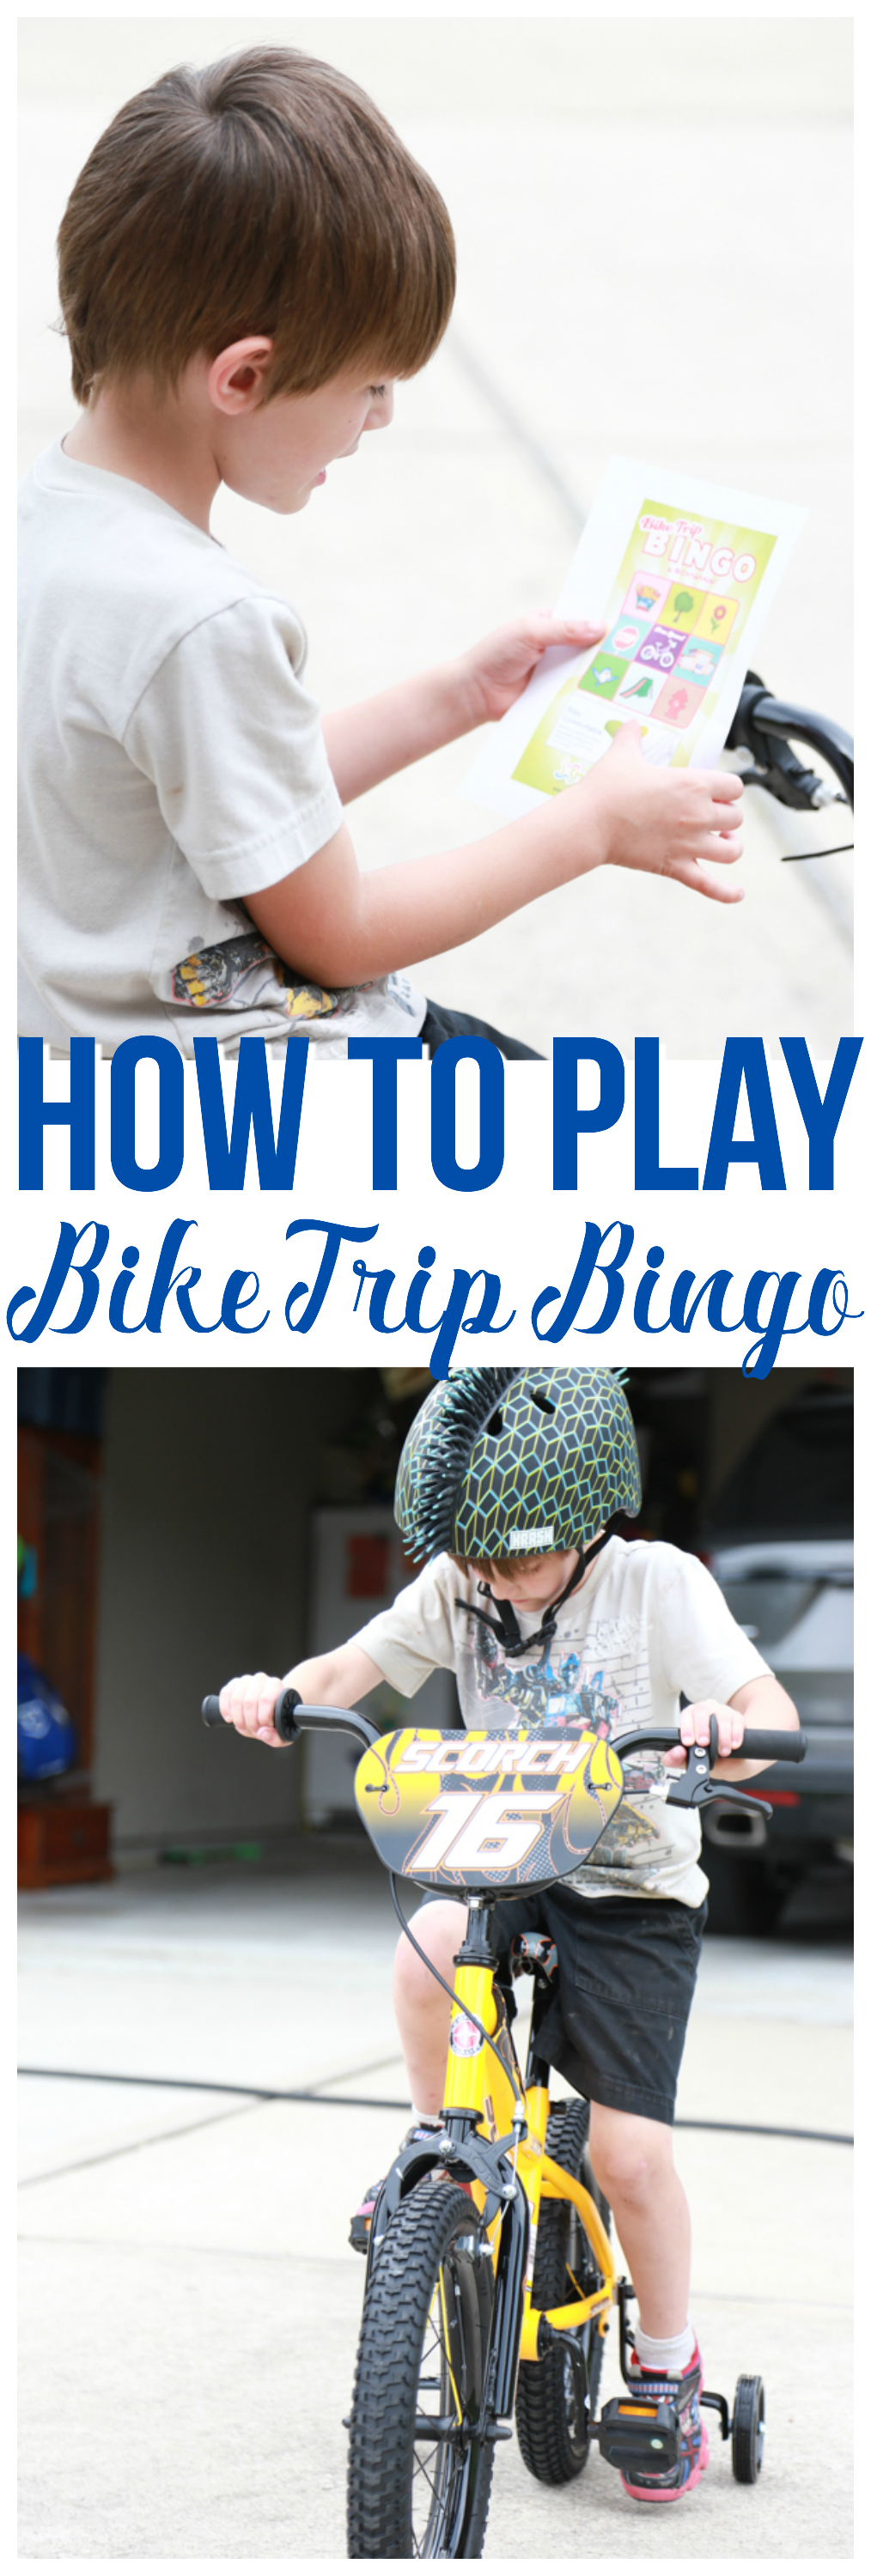 If you don't know how to play Bike Trip Bingo, it's time to learn. Get ready for a fun-packed search to find all the objects on your bingo card.